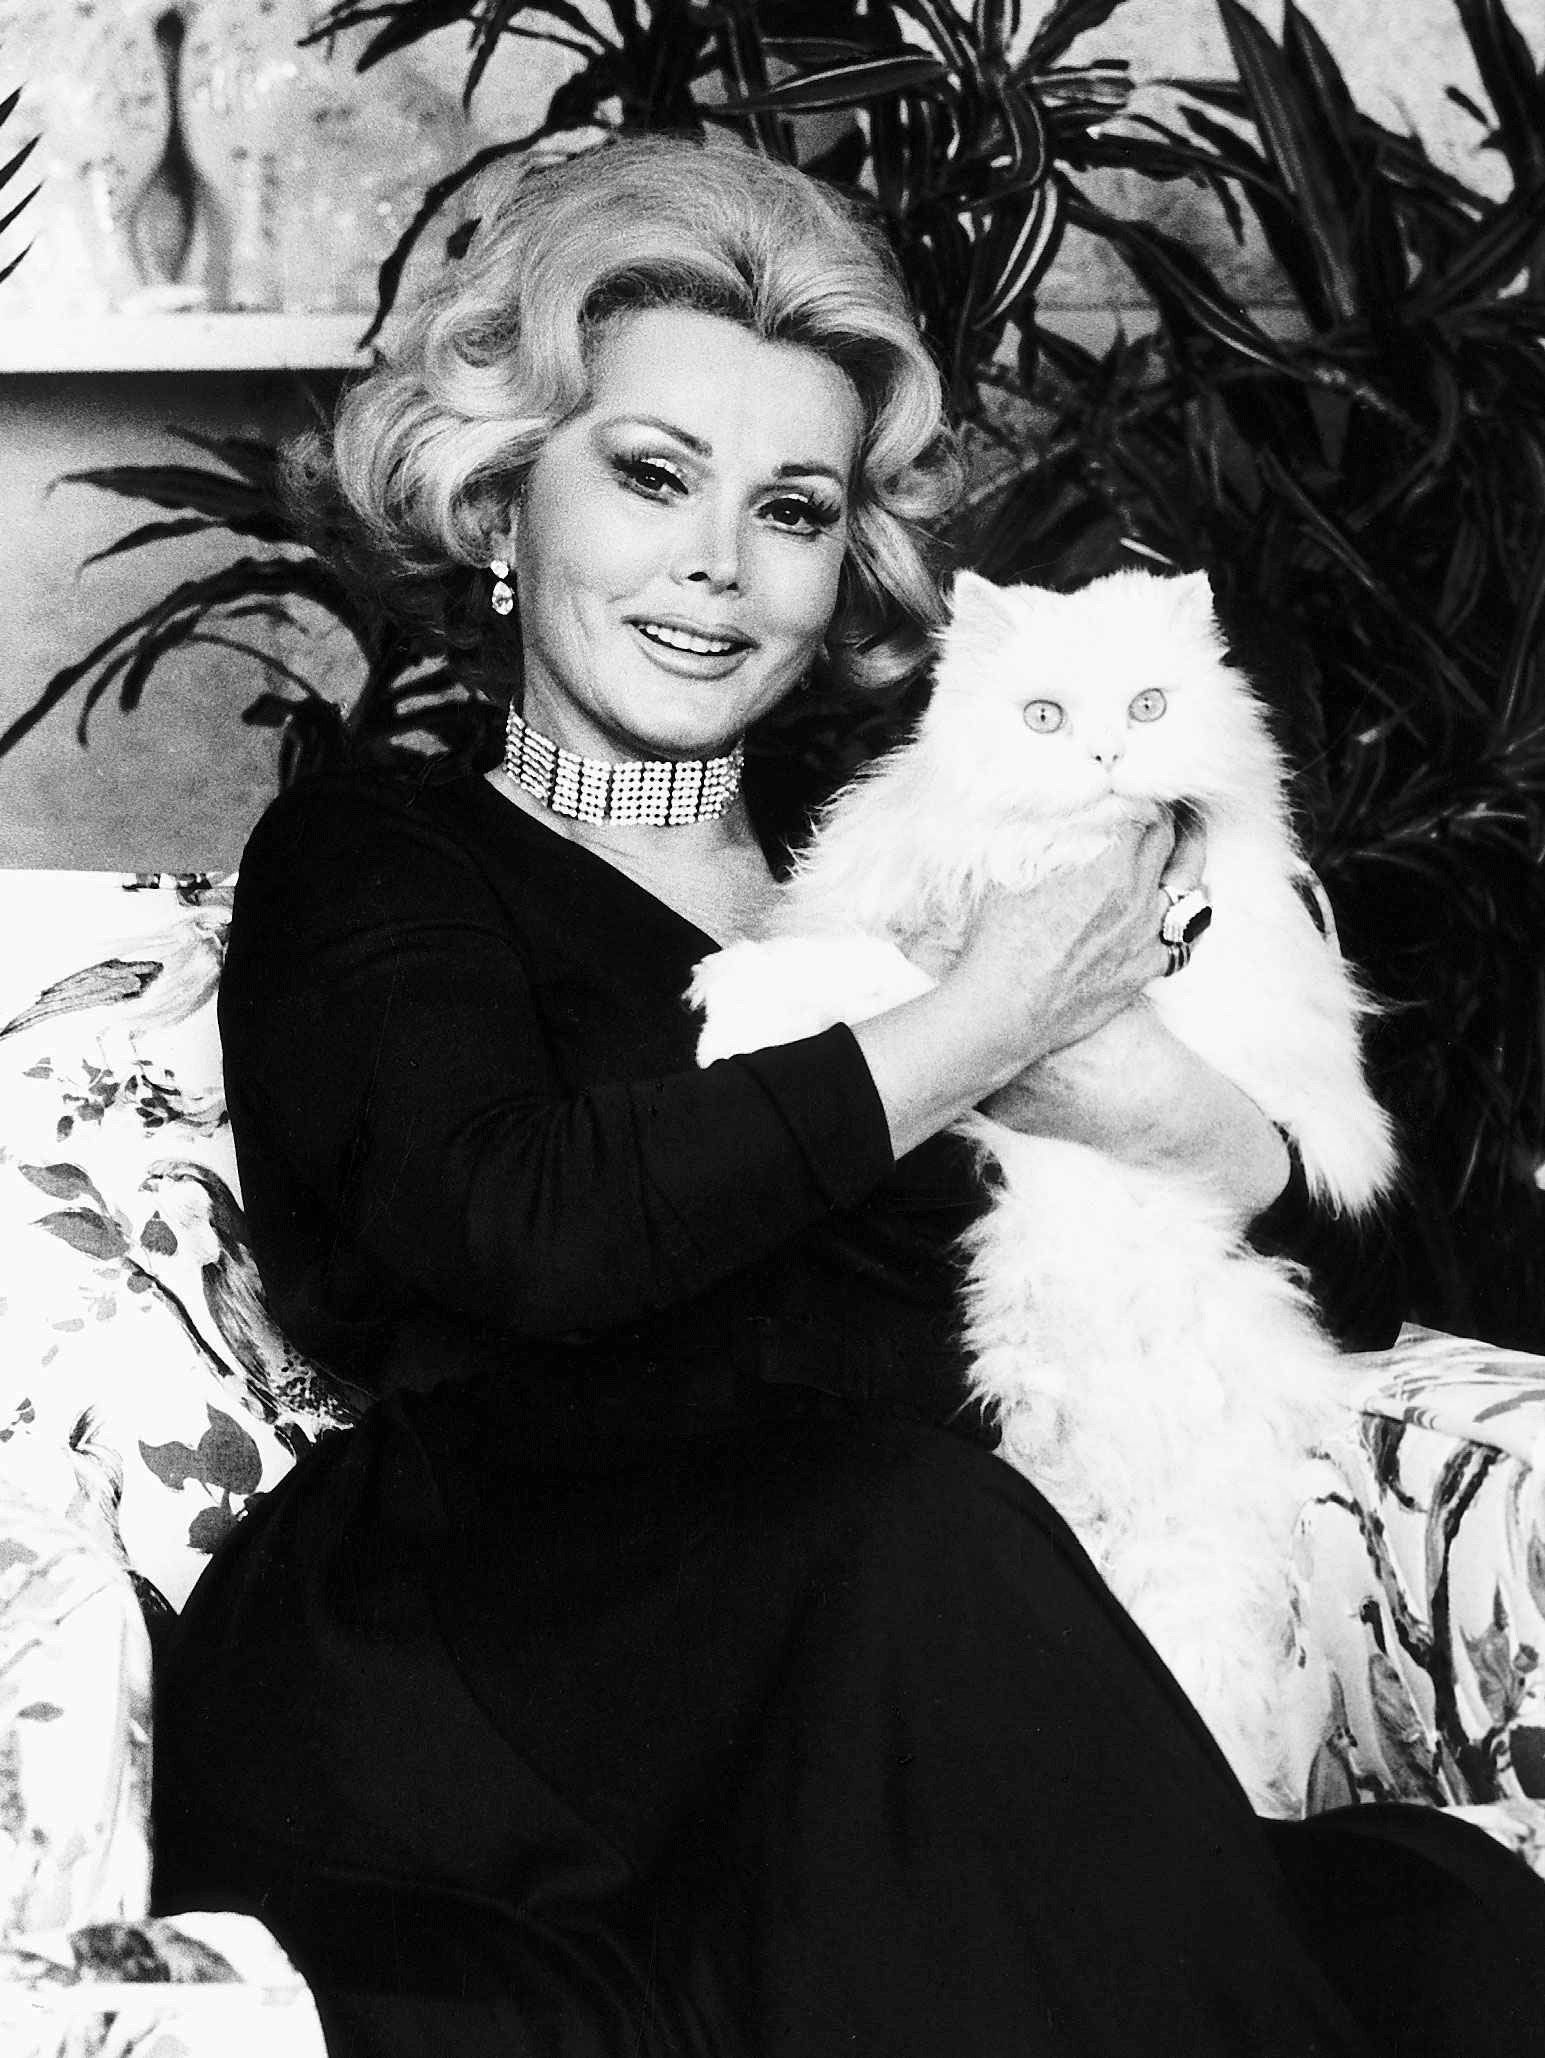 Zsa Zsa Gabor Quotes 35 Of Zsa Zsa Gabor's Best Quotes  Zsa Zsa And Zsa Zsa Gabor